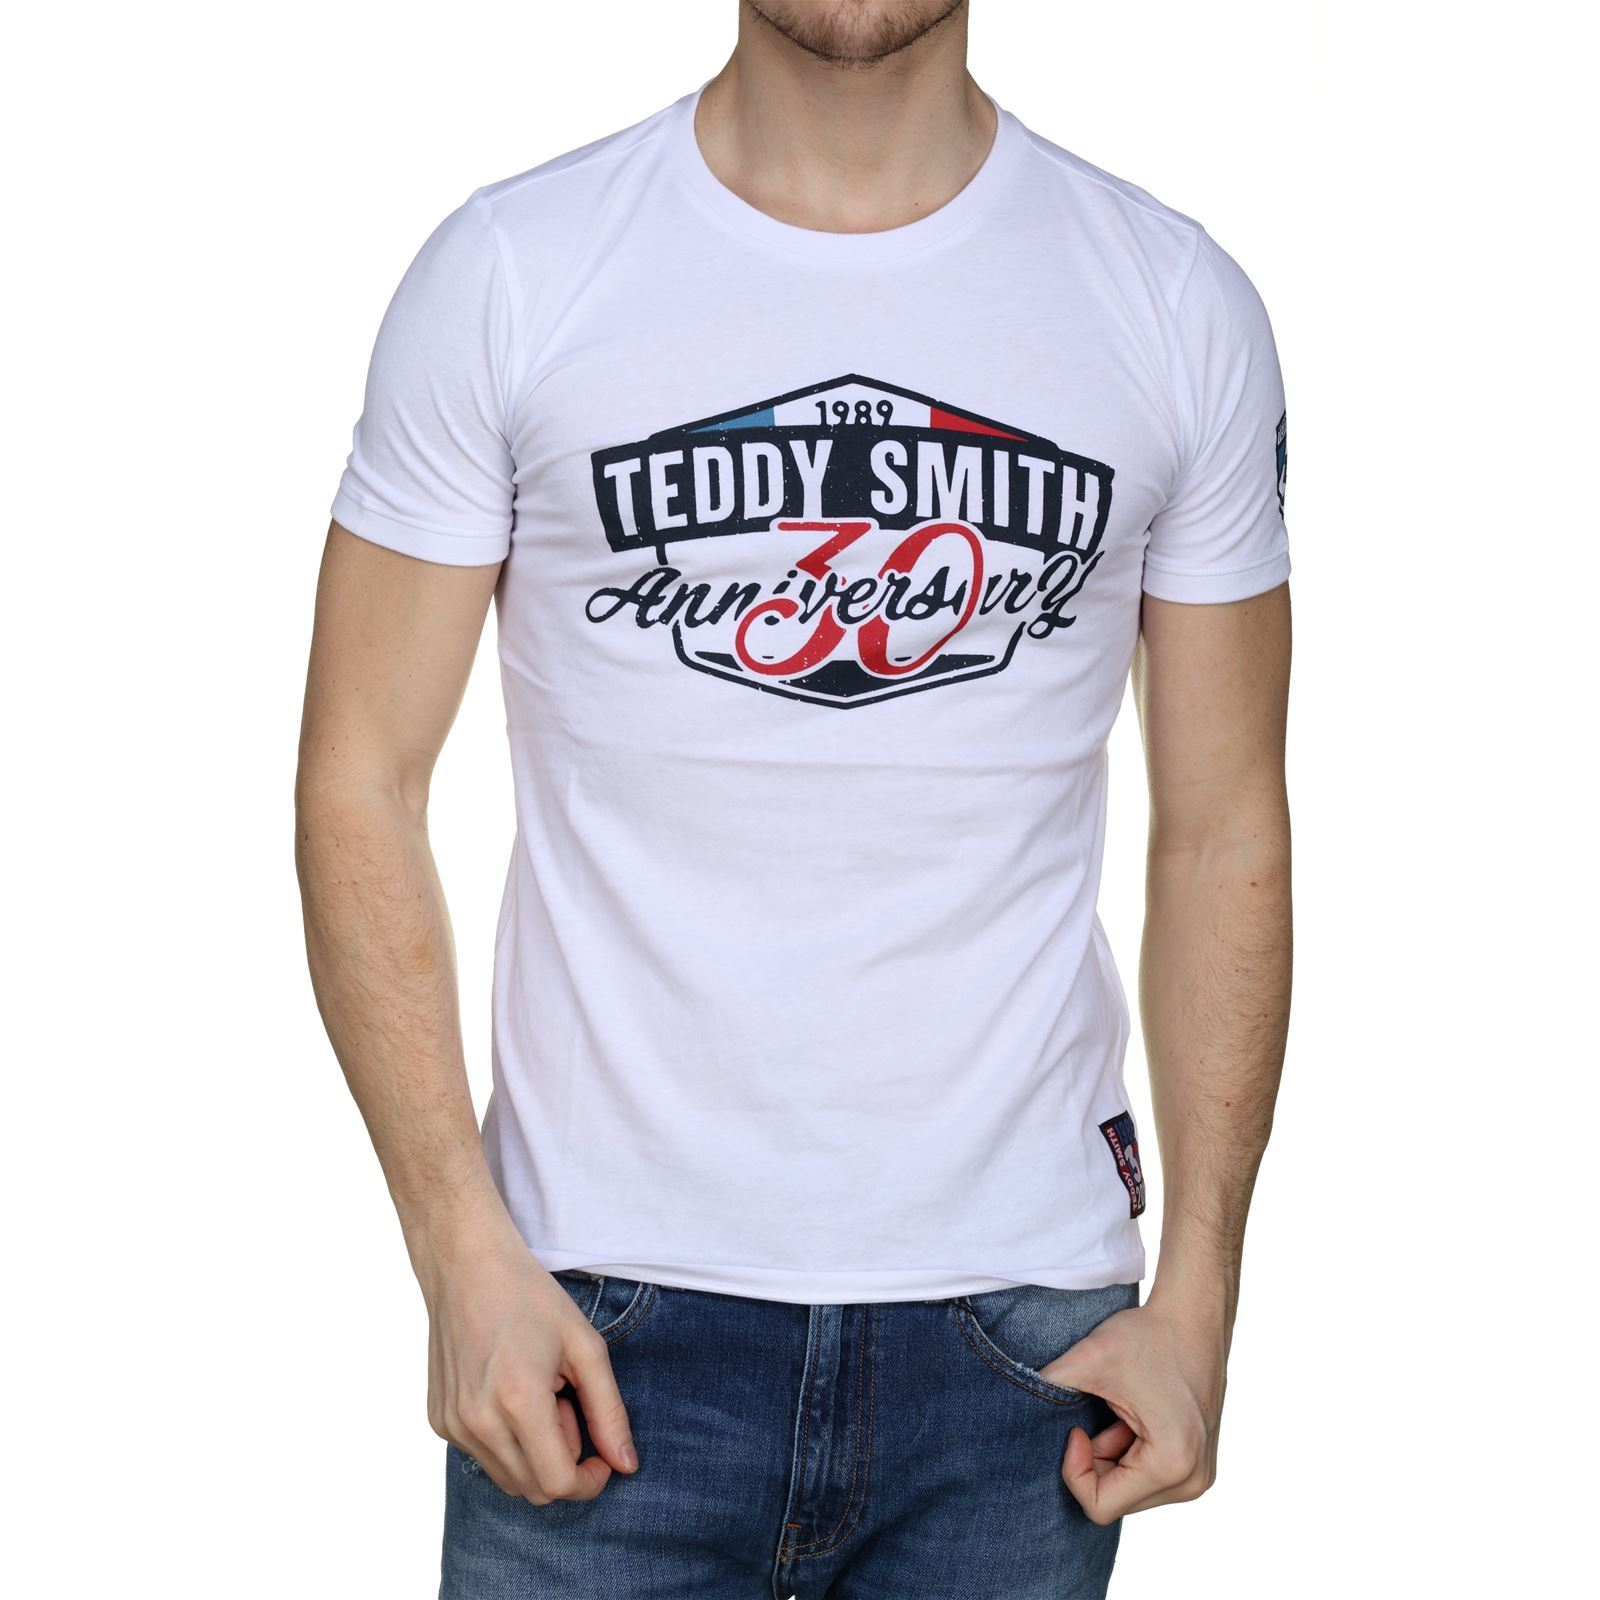 Homme V T Blanc Smith Courtes Manches Teddy McT30 shirt 11013980d bfvY76yg